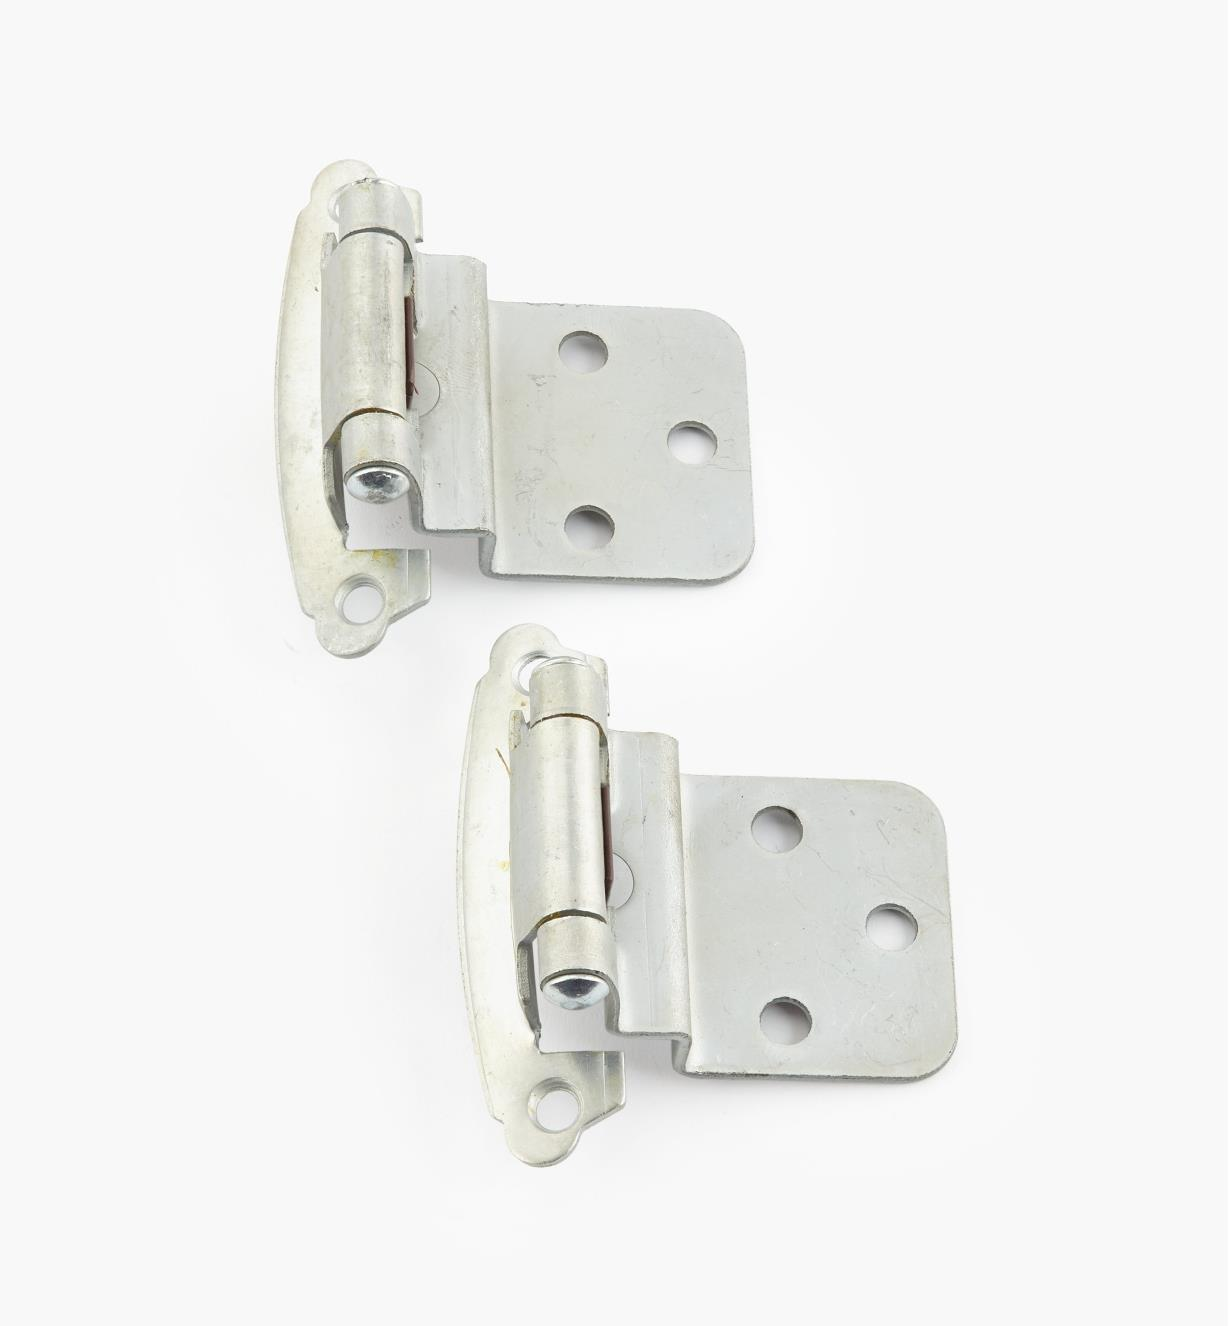 "02H1363 - 3/8"" Satin Chrome Offset Self-Closing Hinge, Pair"